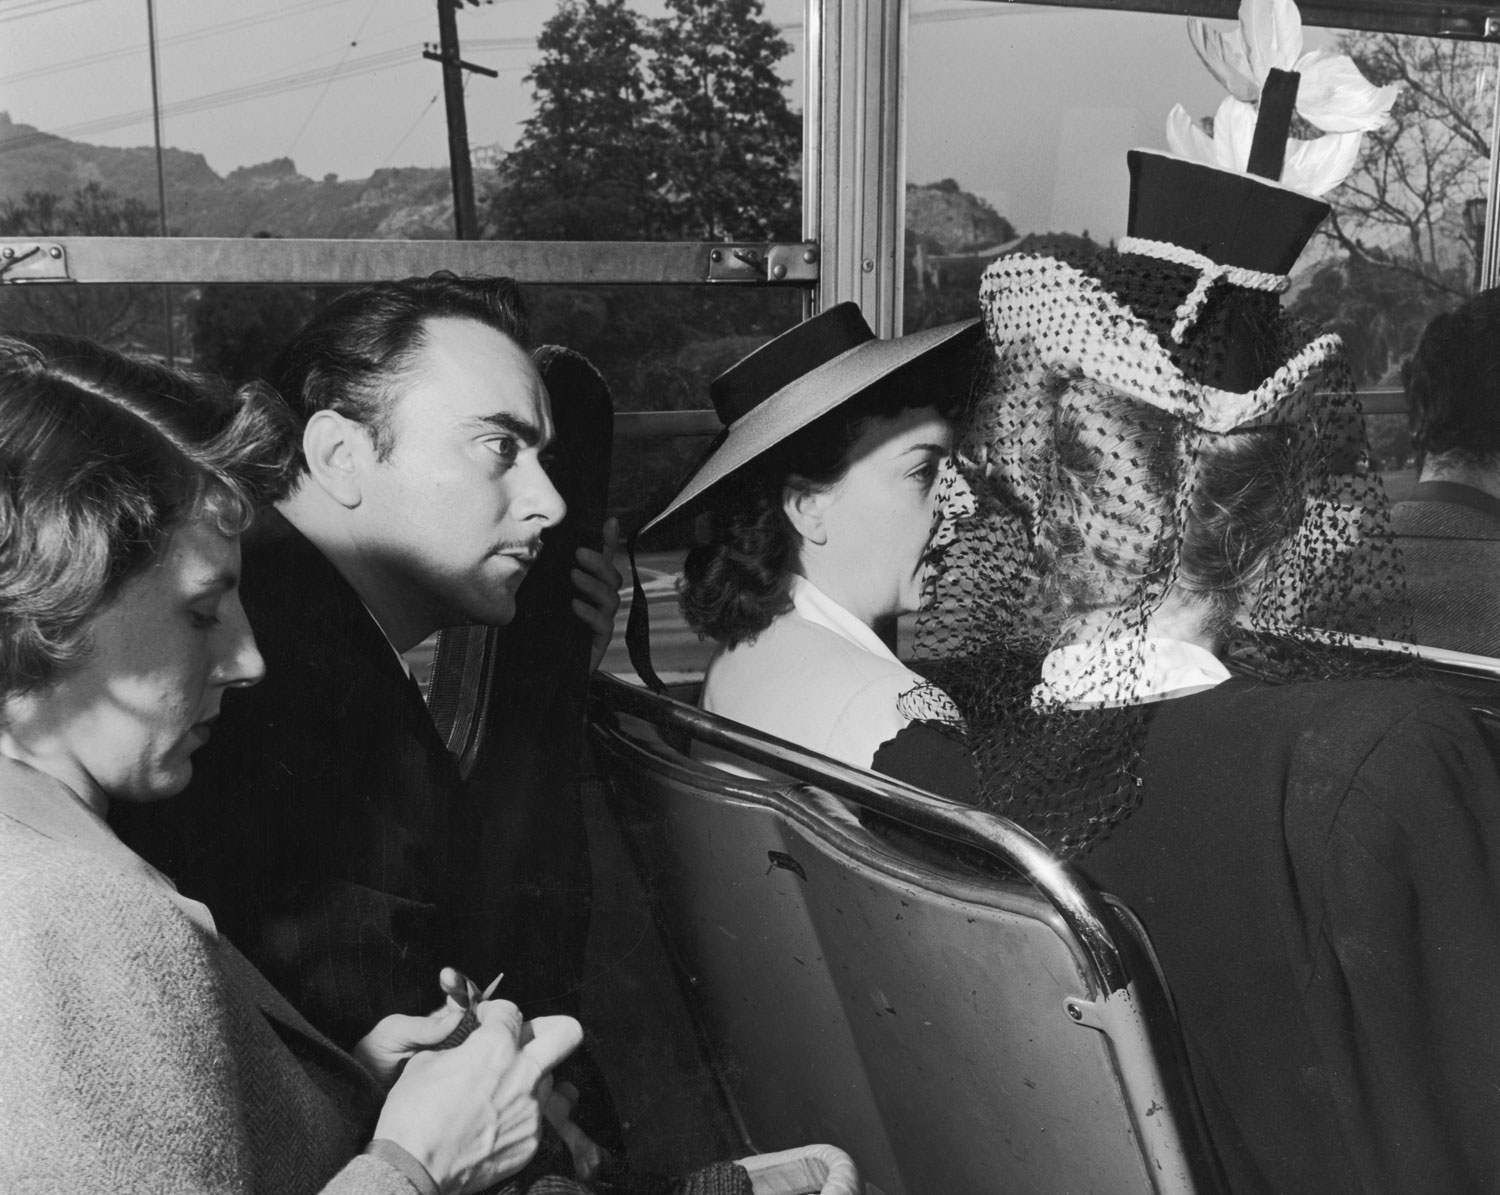 "<strong>Caption from LIFE.</strong> ""Busing home from Sunday services, the blonde girl in the funny hat tells her friend: 'I'm sure now, those Zenith soldiers are sailing from Alaska. He didn't ask us to pray last Sunday, so they must be leaving this week.' In bus seat behind them, a musician leans forward to overhear their conversation."""